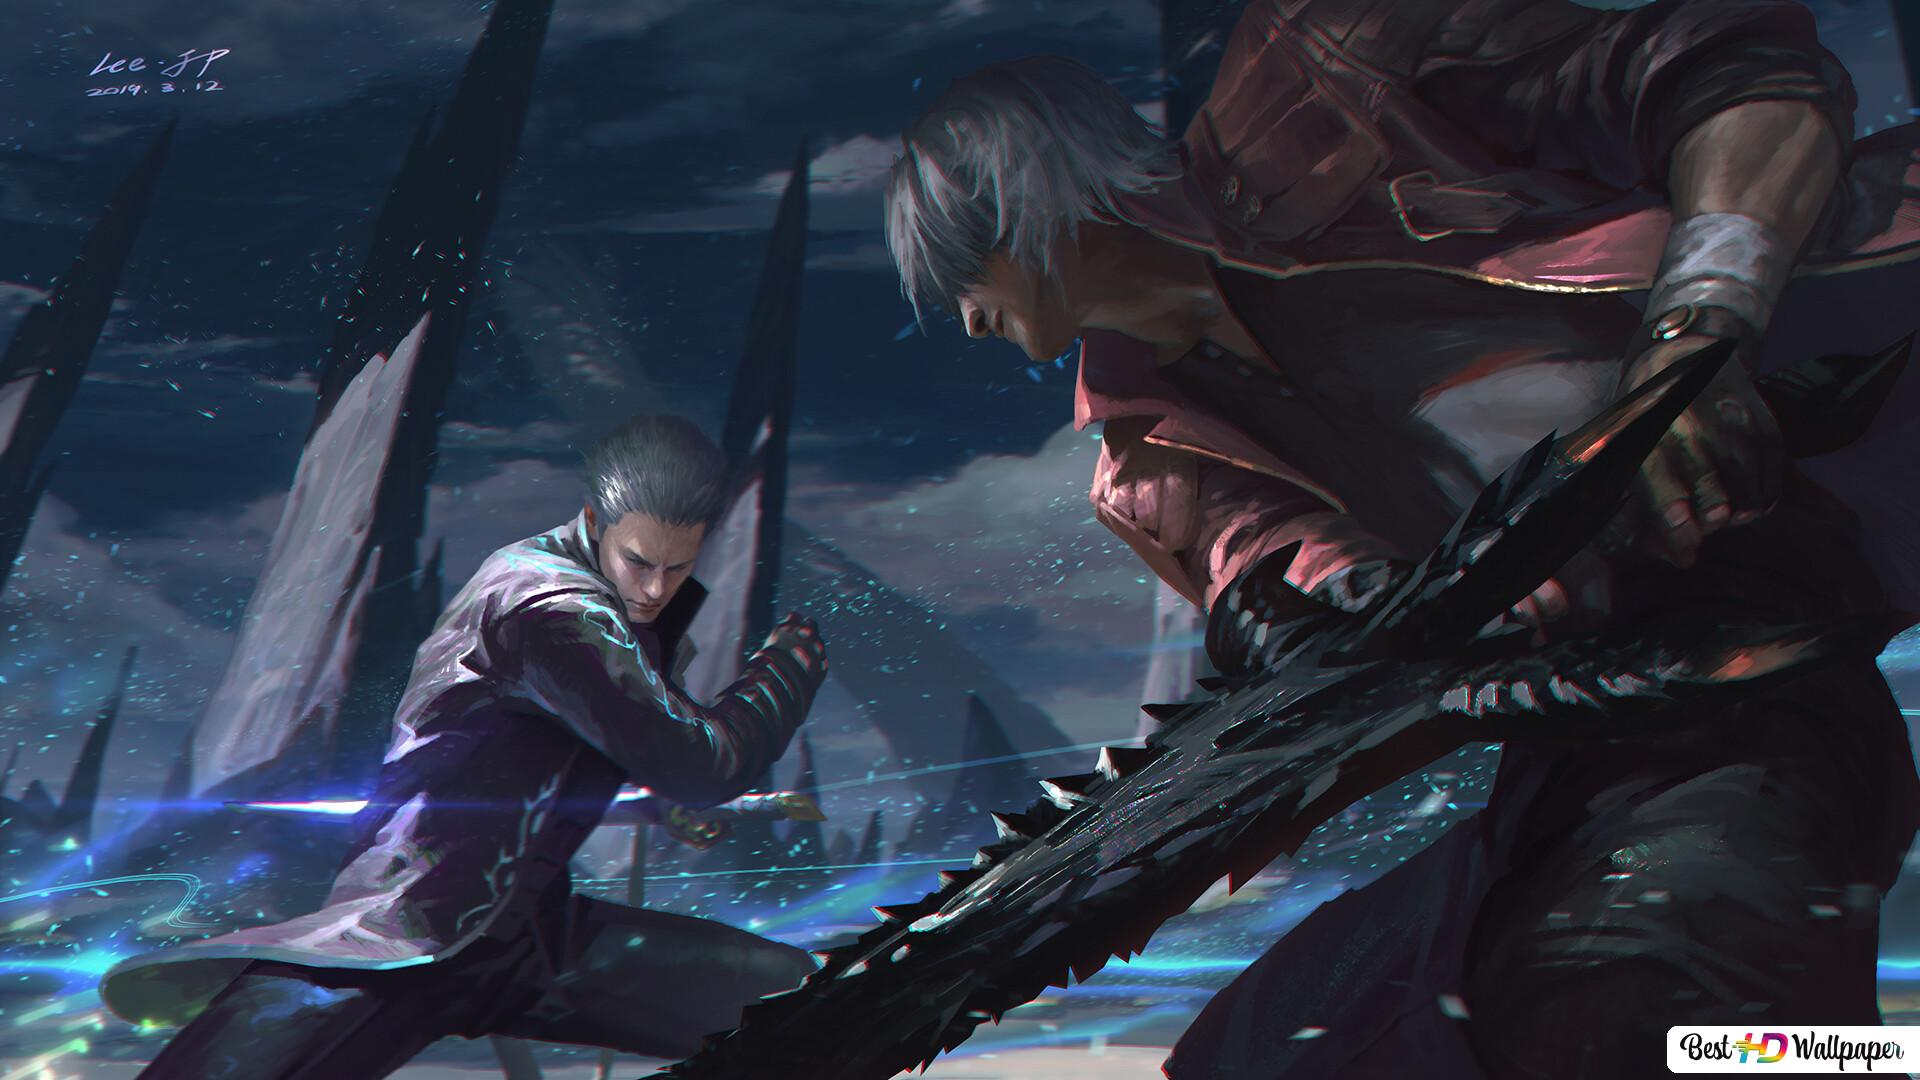 Devil May Cry 5 Vergil Vs Dante Hd Wallpaper Download